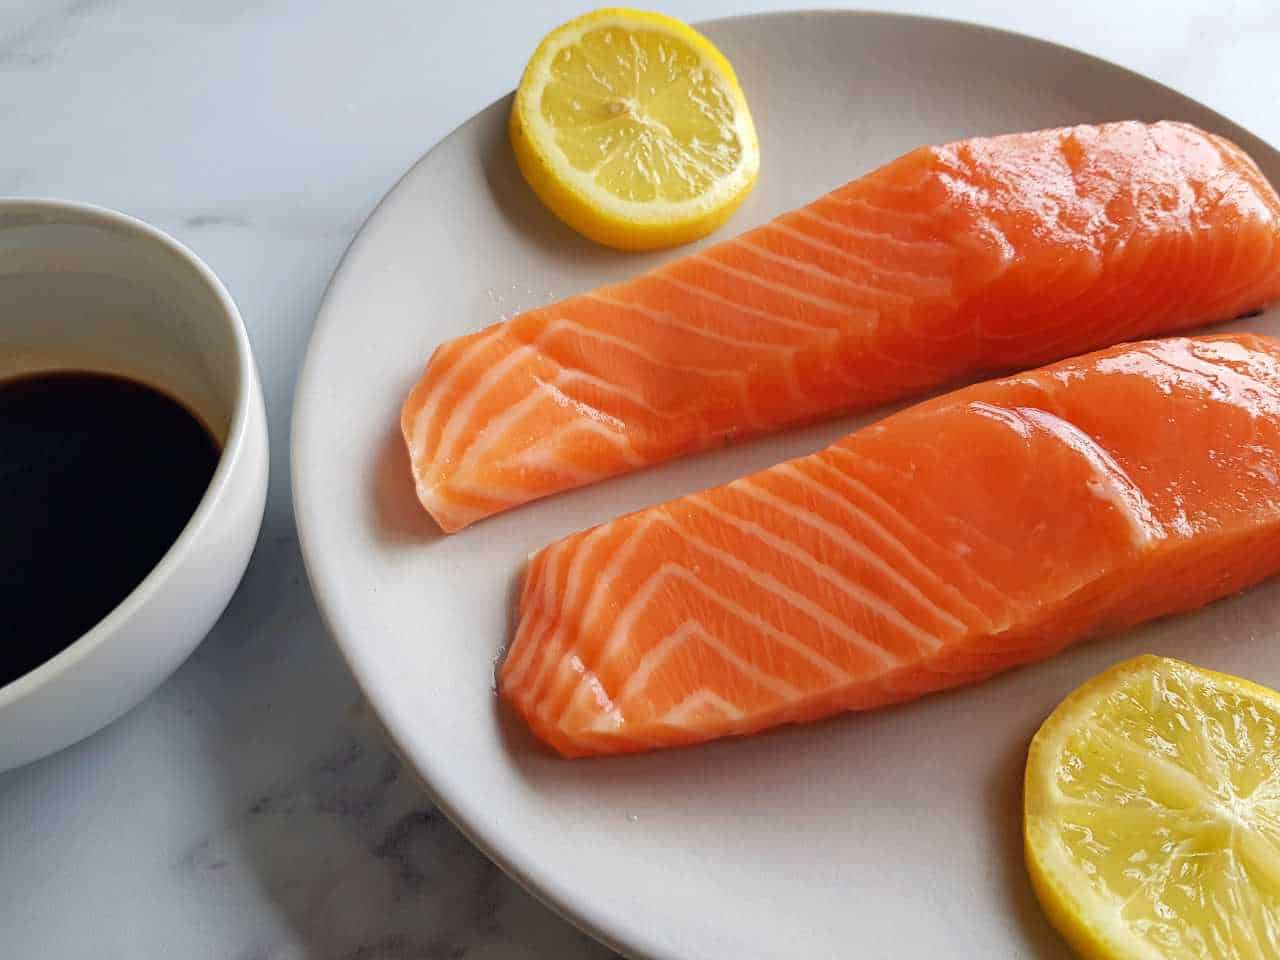 Raw salmon fillet on a plate with lemon slices, and a bowl of balsamic maple glaze.